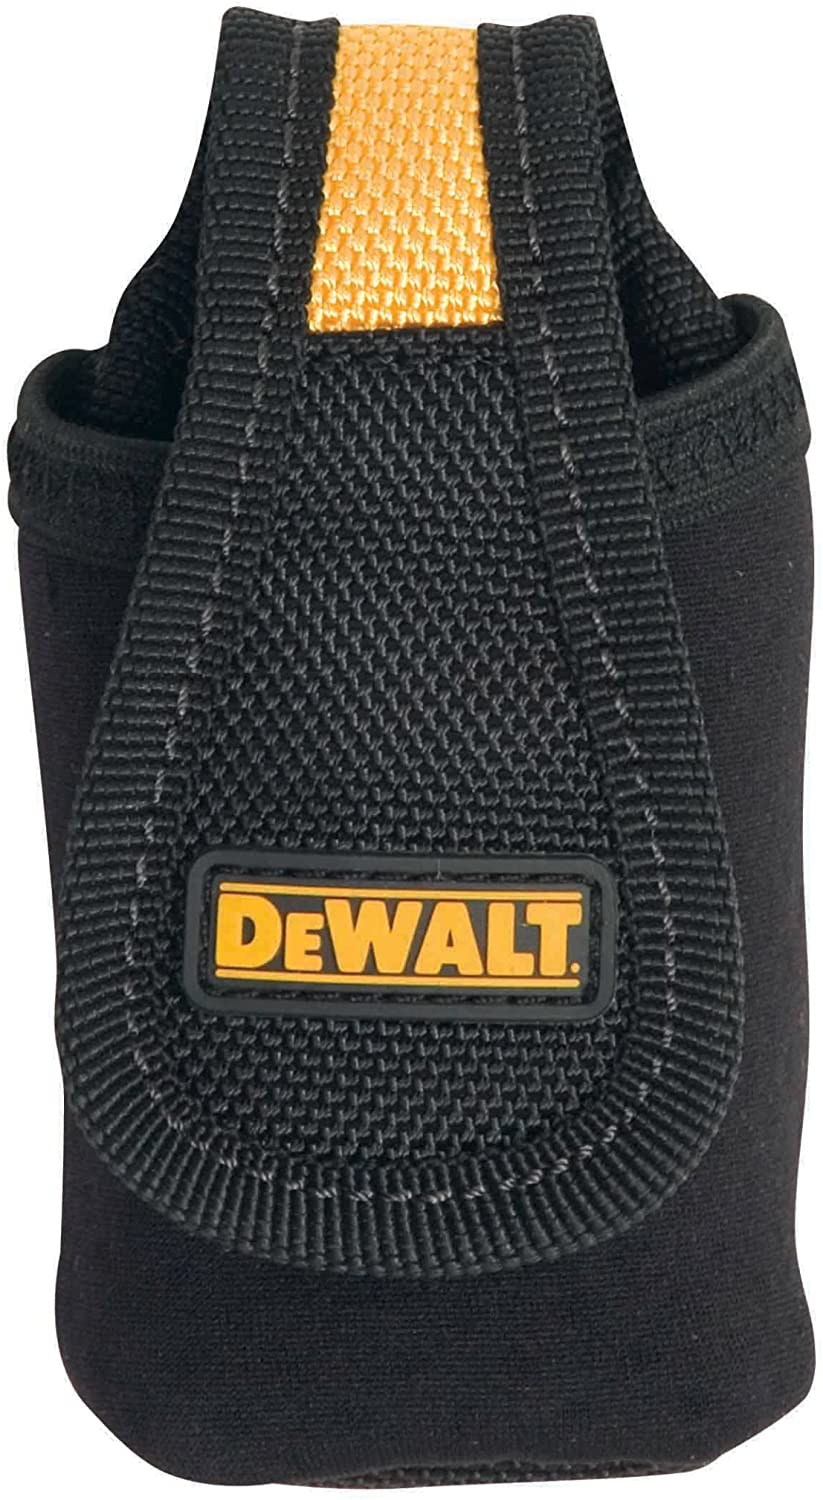 DEWALT DG5126 Heavy Duty, Cell Phone Holder